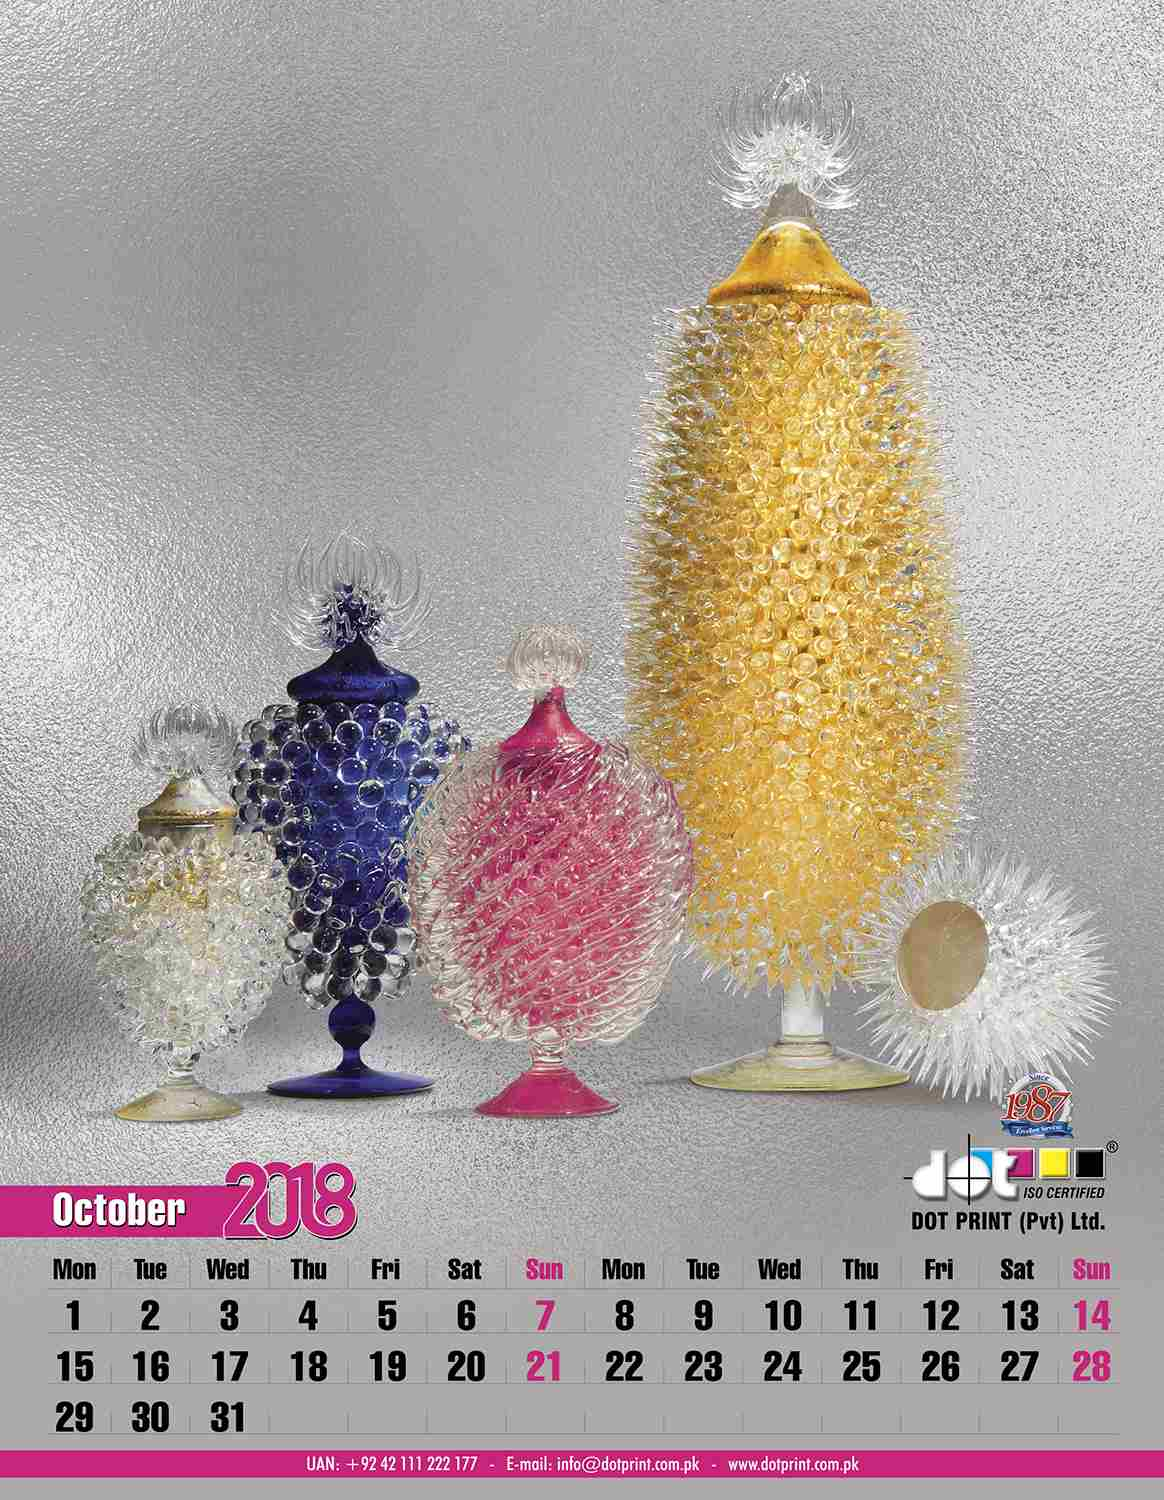 50080430152-00 Dotprint Calendar 2018 Set#2,2:2